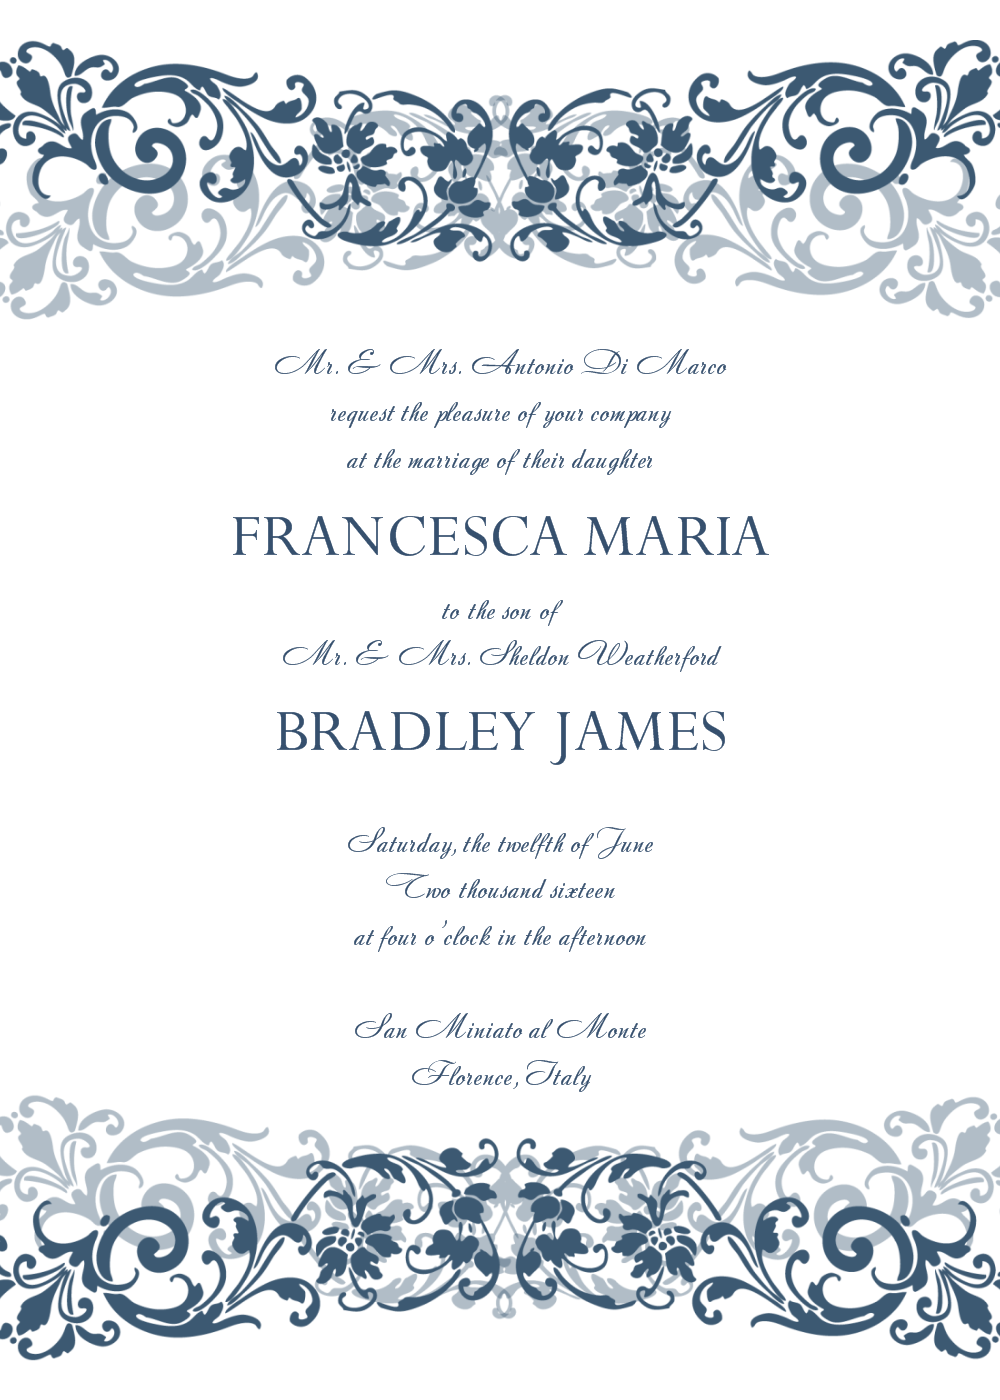 30 Free Wedding Invitations Templates 21st Bridal World Lists And Trends